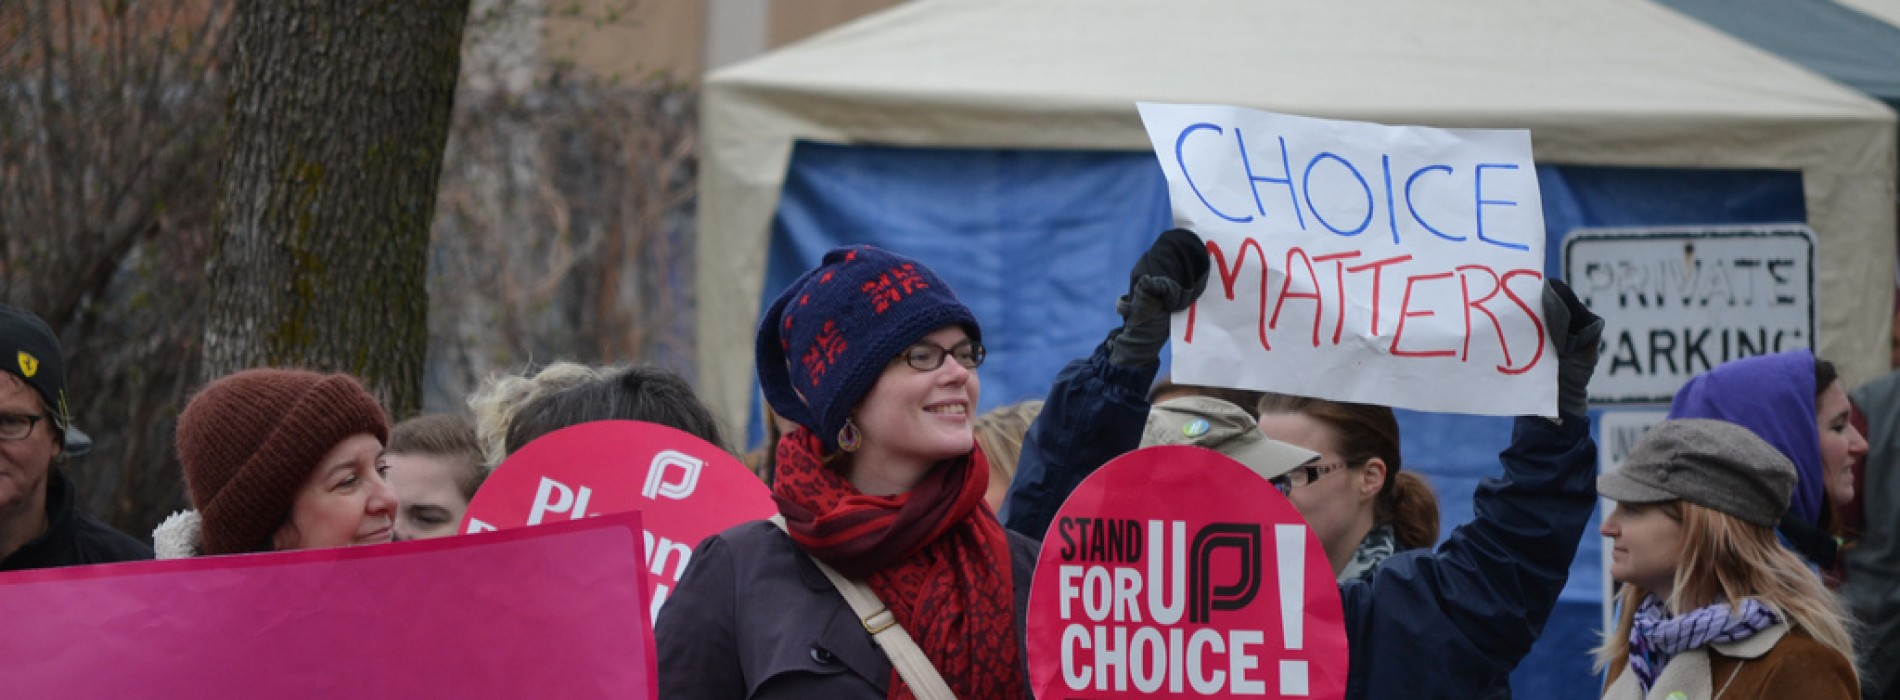 Ron Schmidt: National anti-choice campaign attacks the rights and lives of Maine women